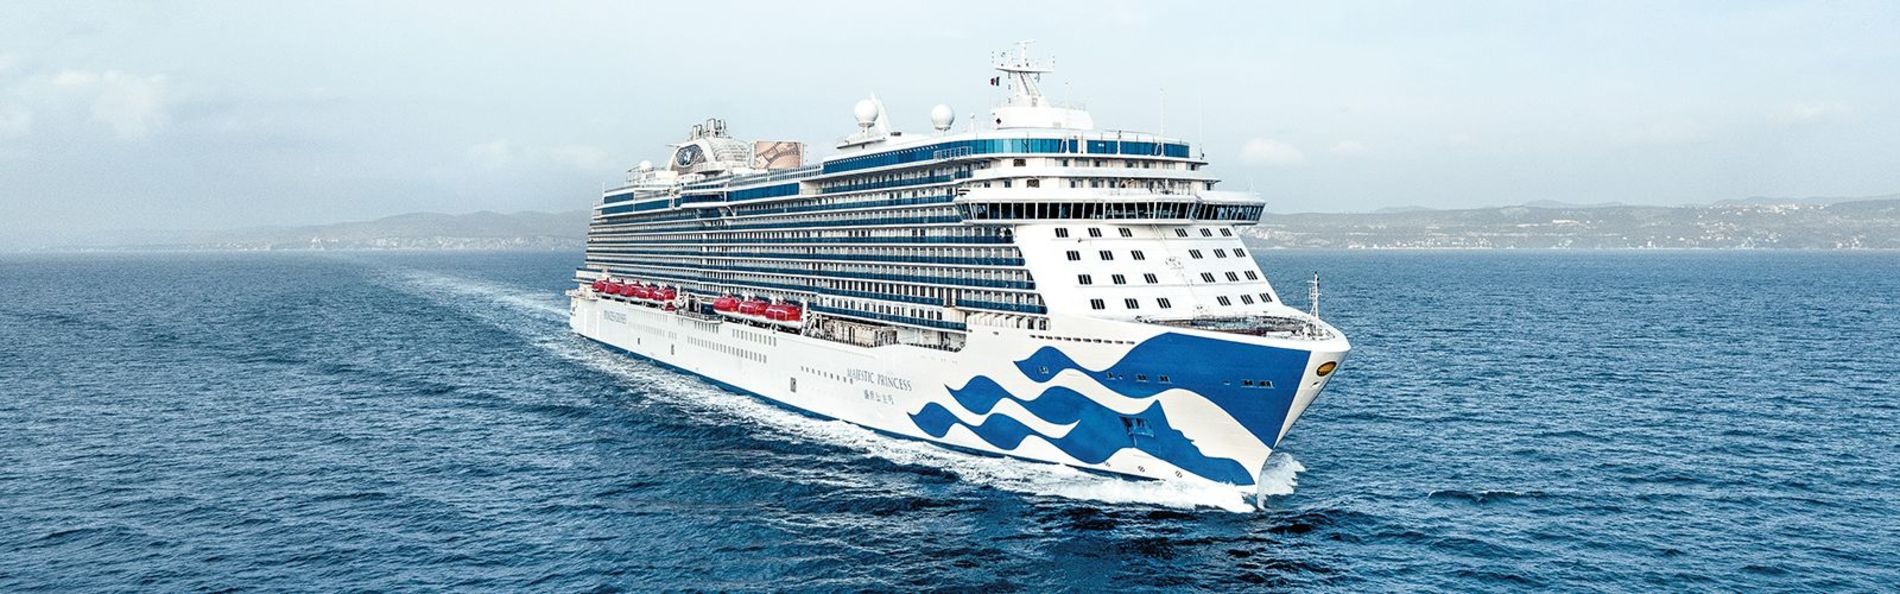 A photo of the Majestic Princess cruise ship